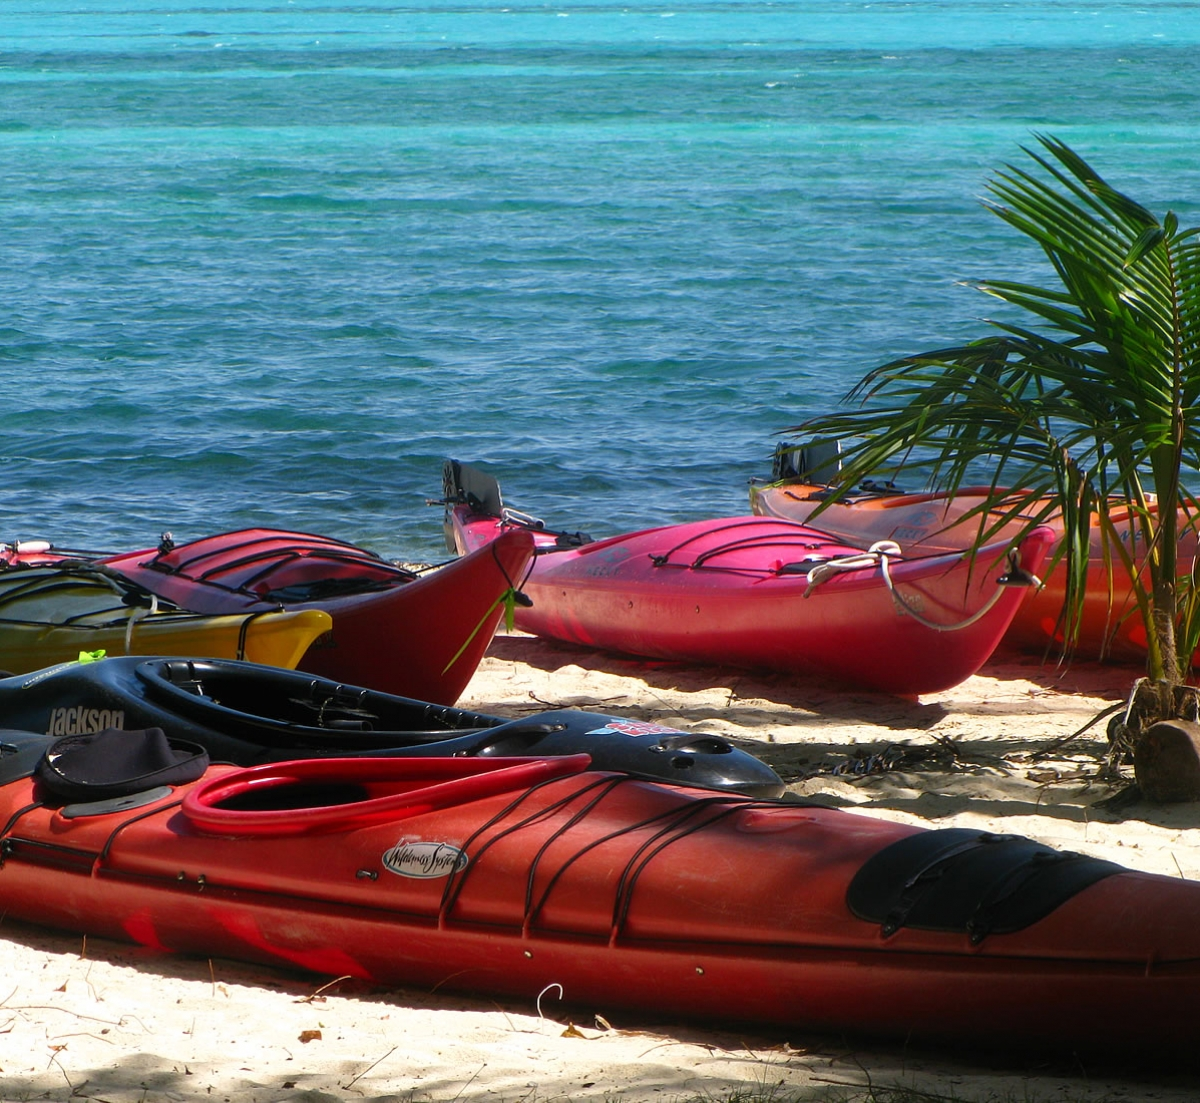 Gear and Kayaks on the beach